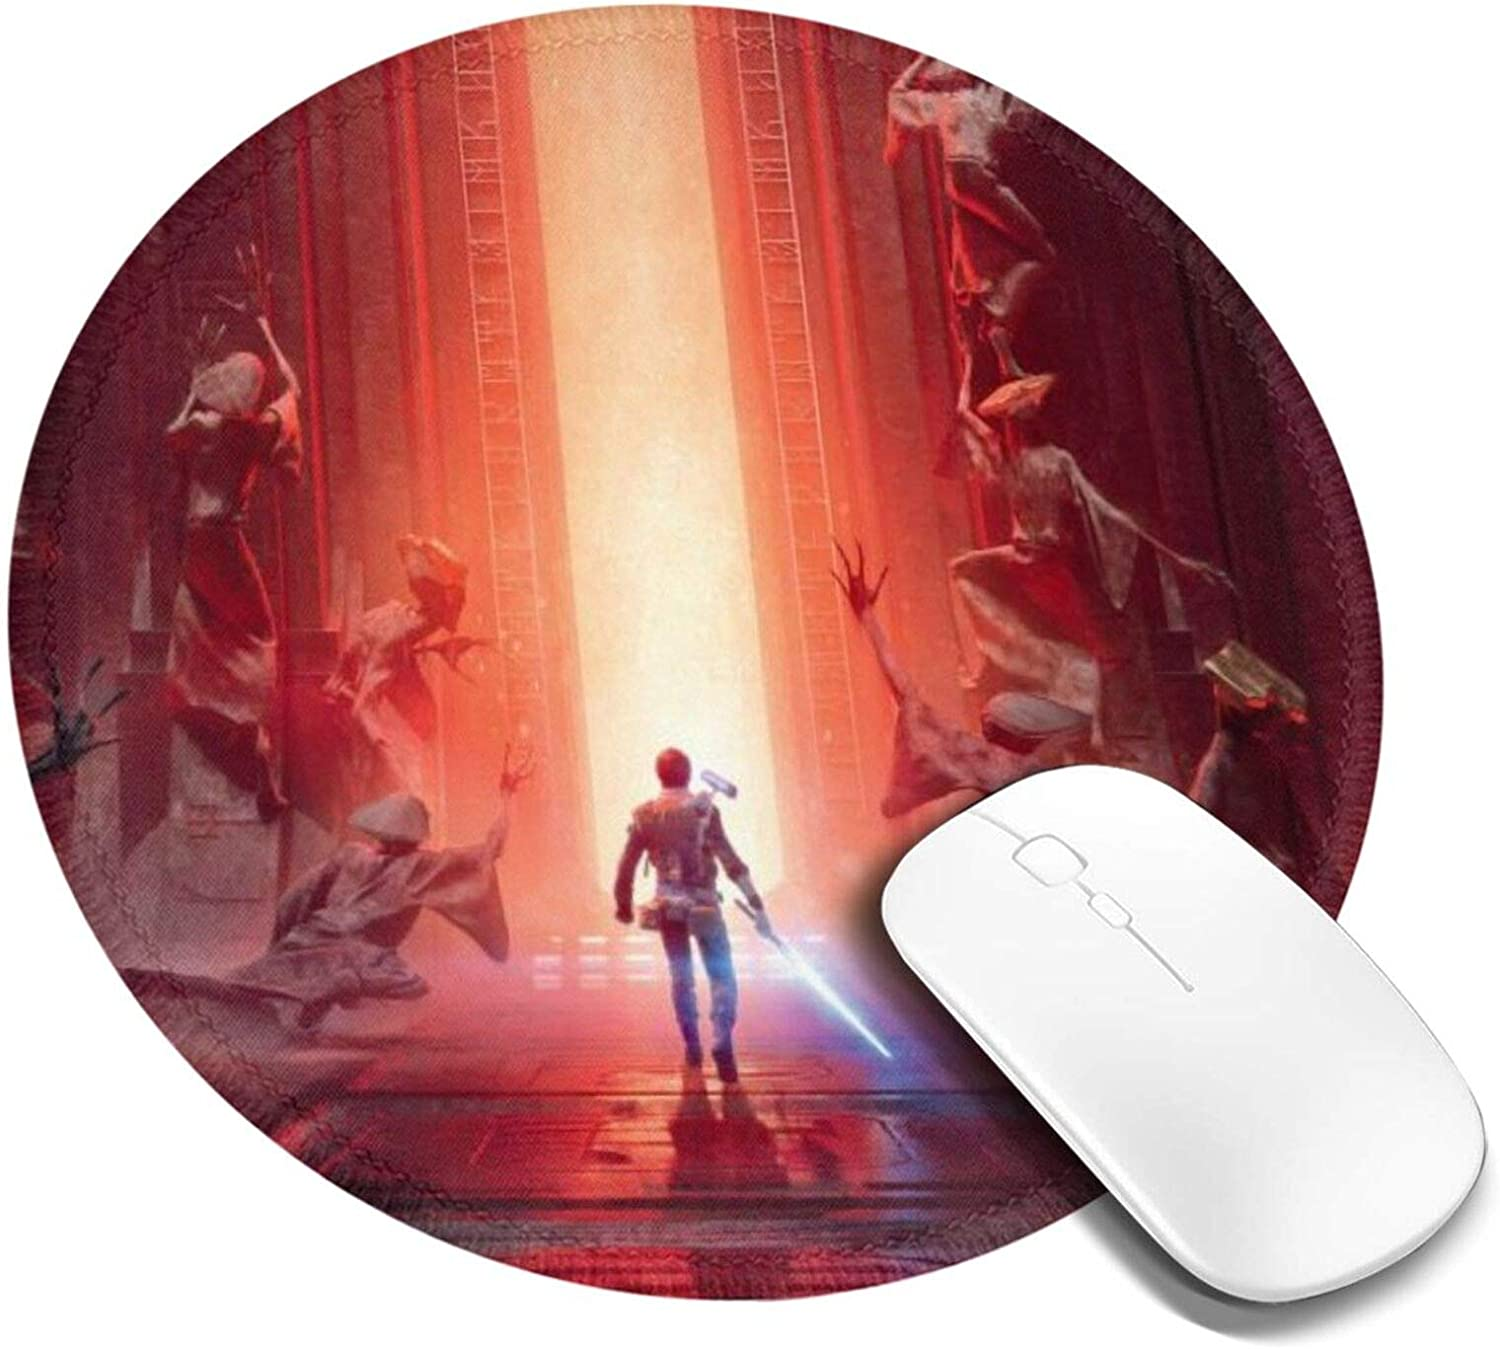 S-Tar W-ars Jar Jar Binks Round Mouse Pad, Mouse Mat for Office Supplies & Gaming Computer Desk Accessories, with Non-Slip Rubber Base